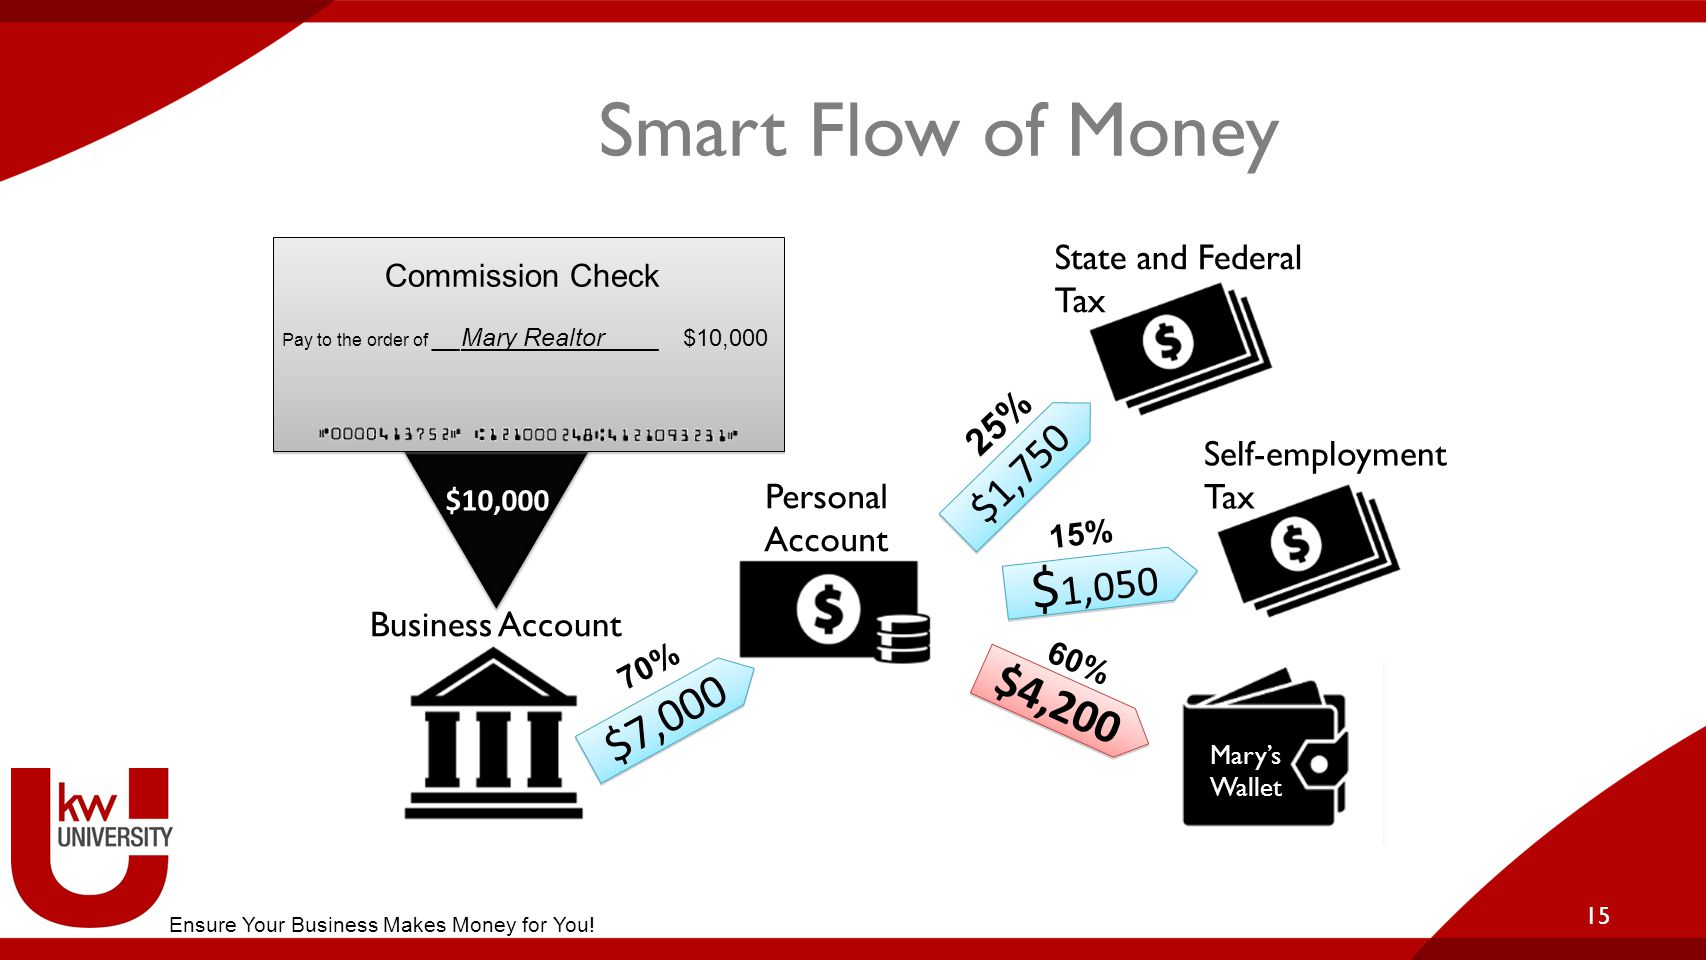 15 Smart Flow of Money $10,000 Mary's Wallet Business Account Personal Account $7,000 $1,750 $ 1,050 Self-employment Tax State and Federal Tax $4,200 25% 15% 60% 70% Commission Check Pay to the order of __Mary Realtor____ $10,000 Ensure Your Business Makes Money for You.